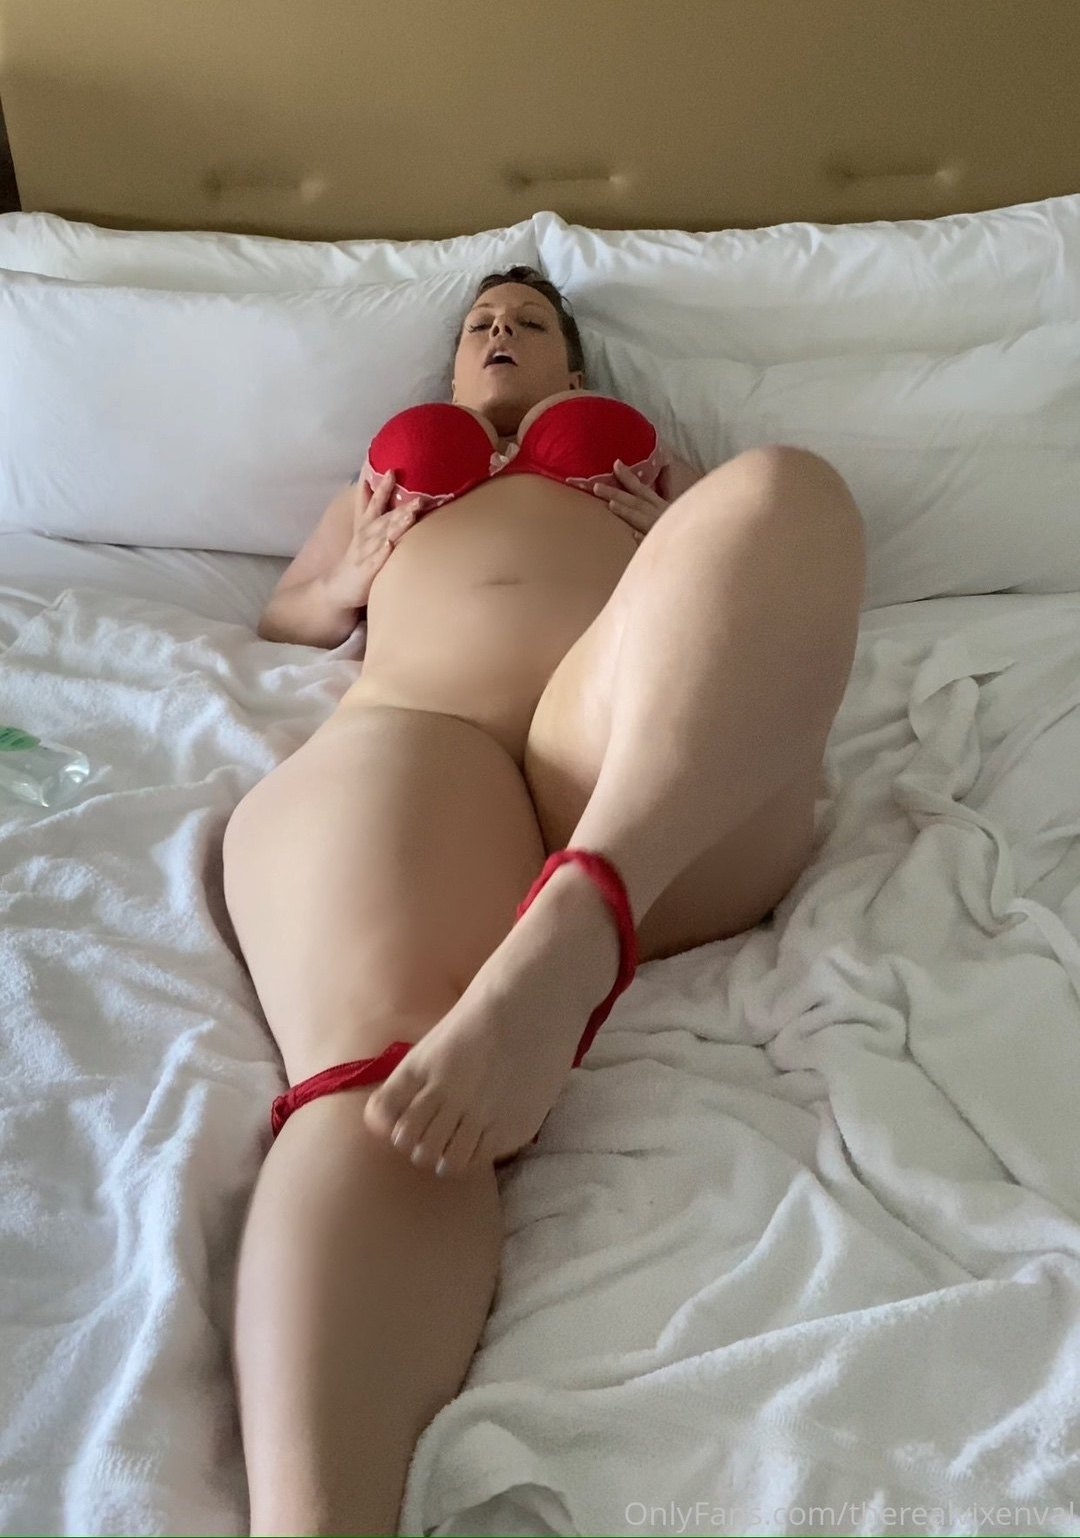 Therealvixenval Curvesofanna Onlyfans Nudes Leaks 0034